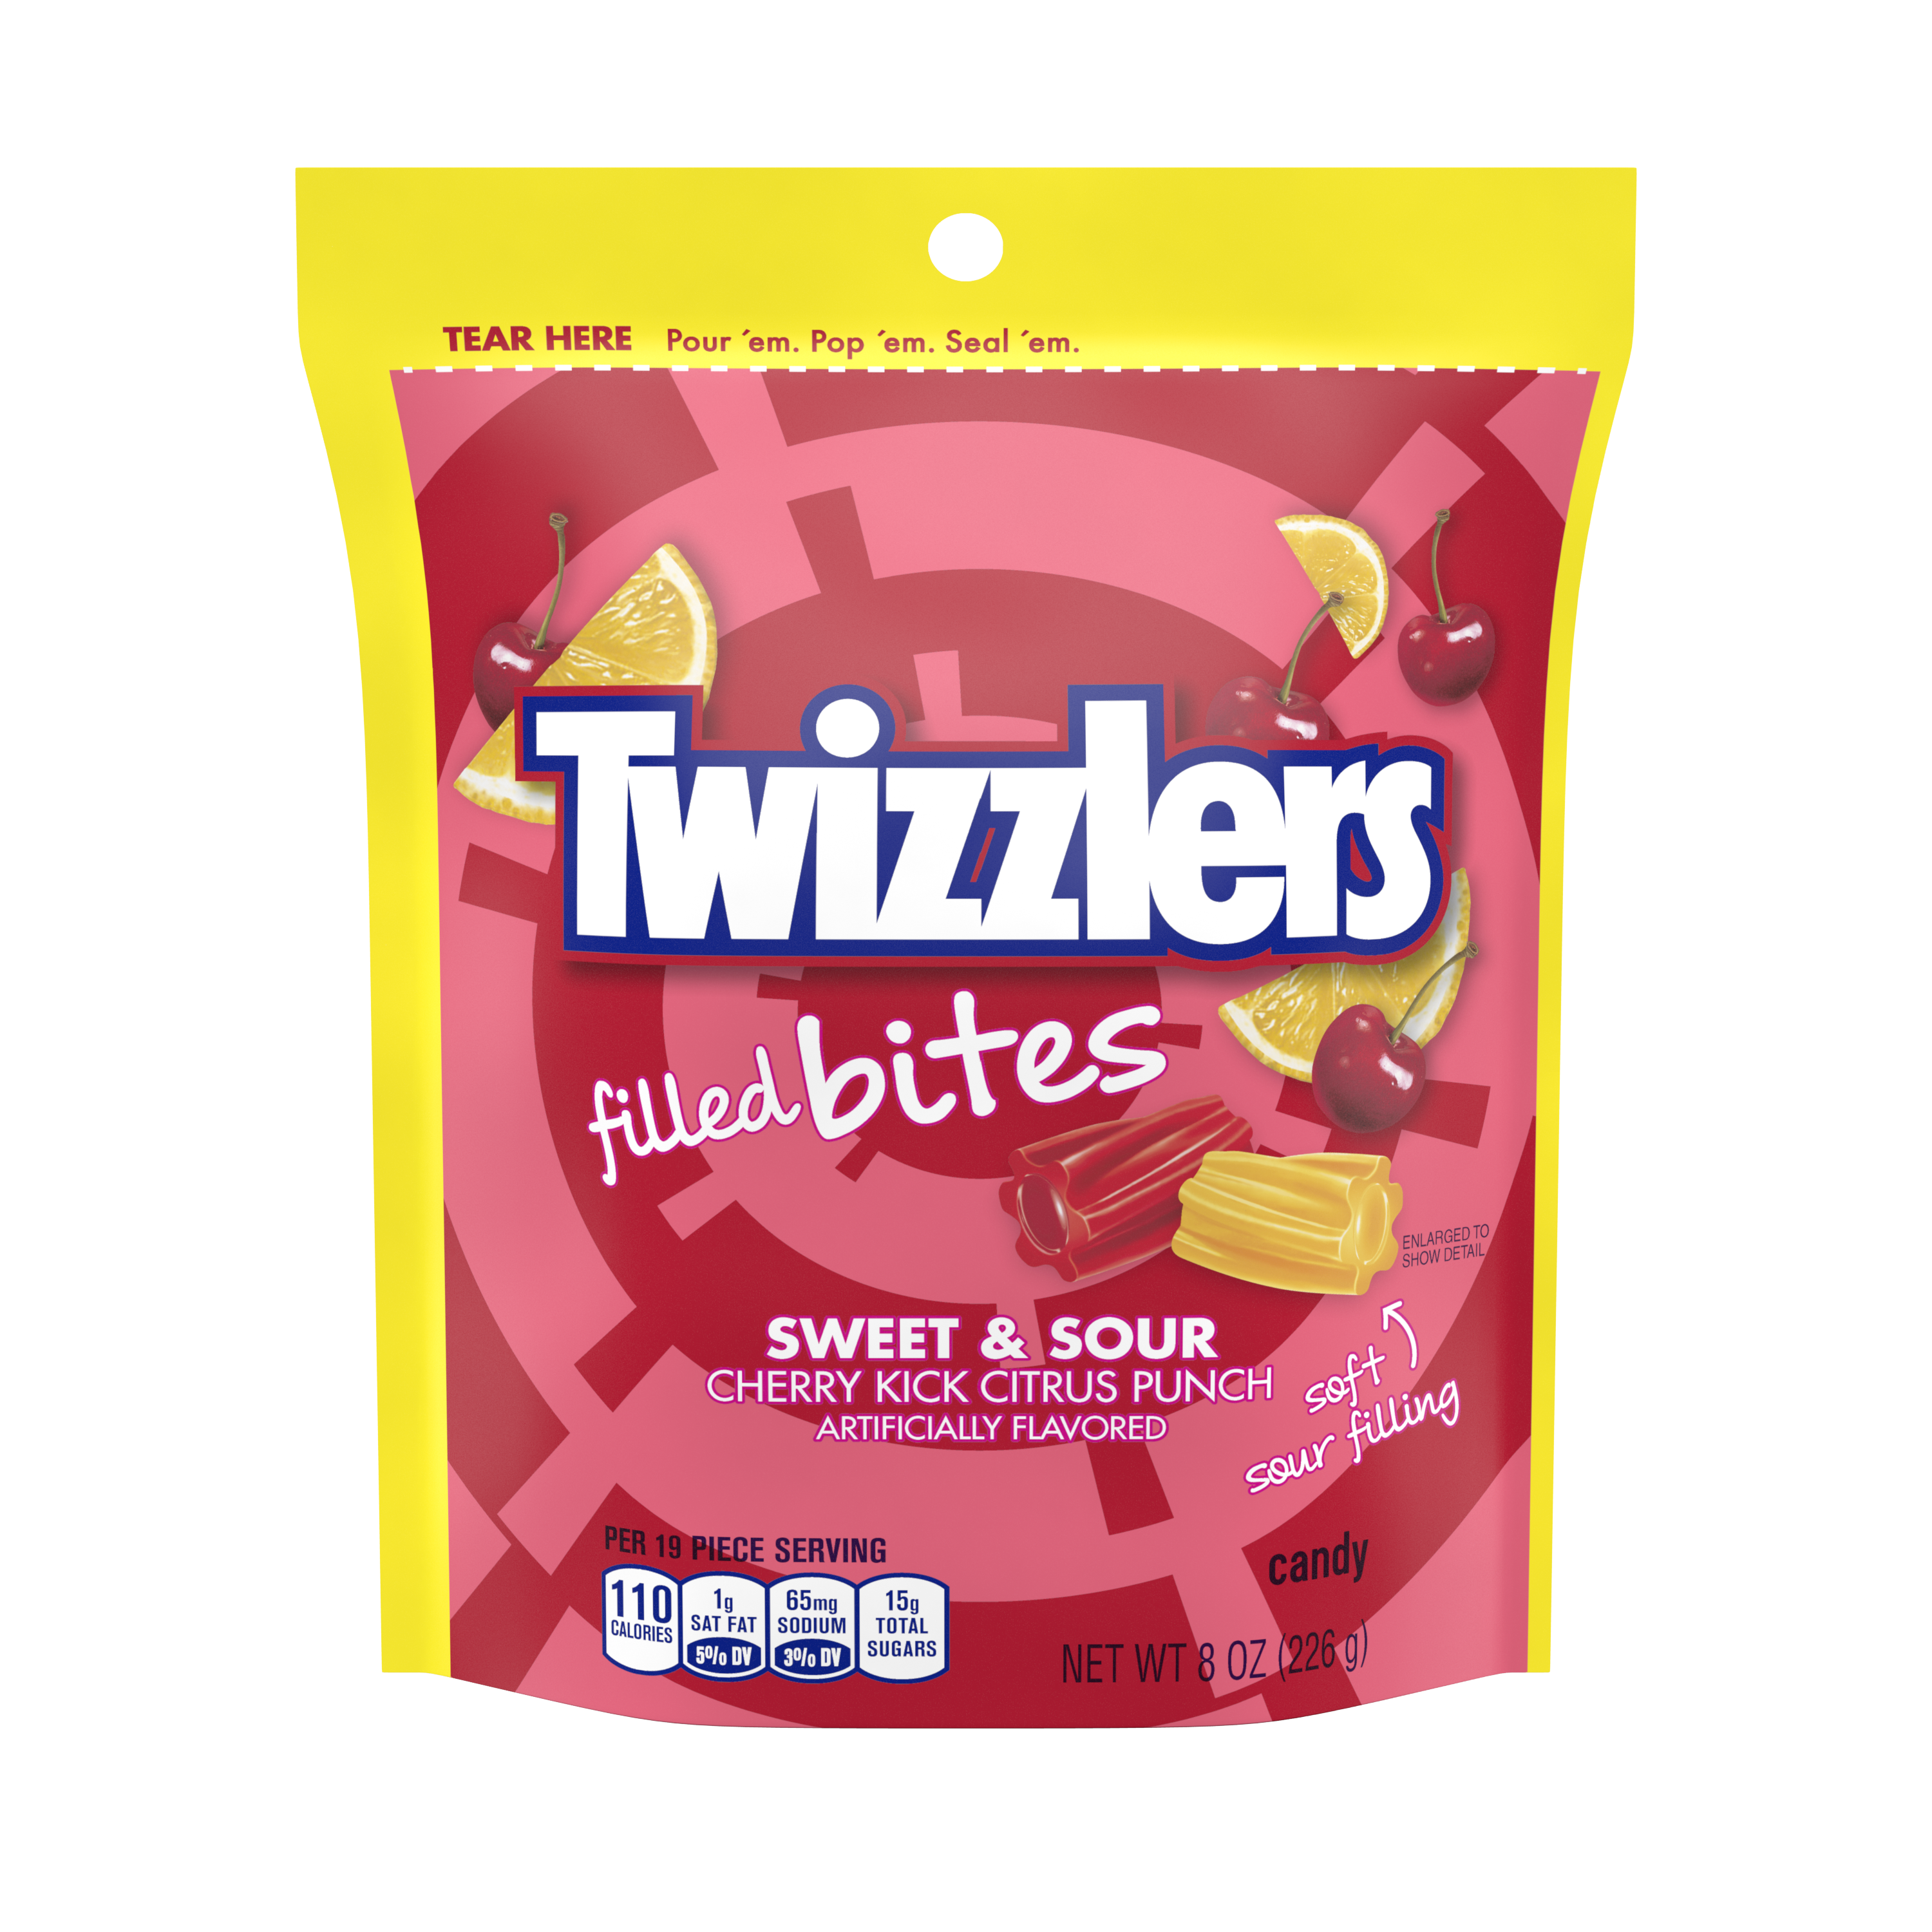 TWIZZLERS Filled Bites Sweet & Sour Cherry Kick Citrus Punch Candy, 8 oz bag - Front of Package